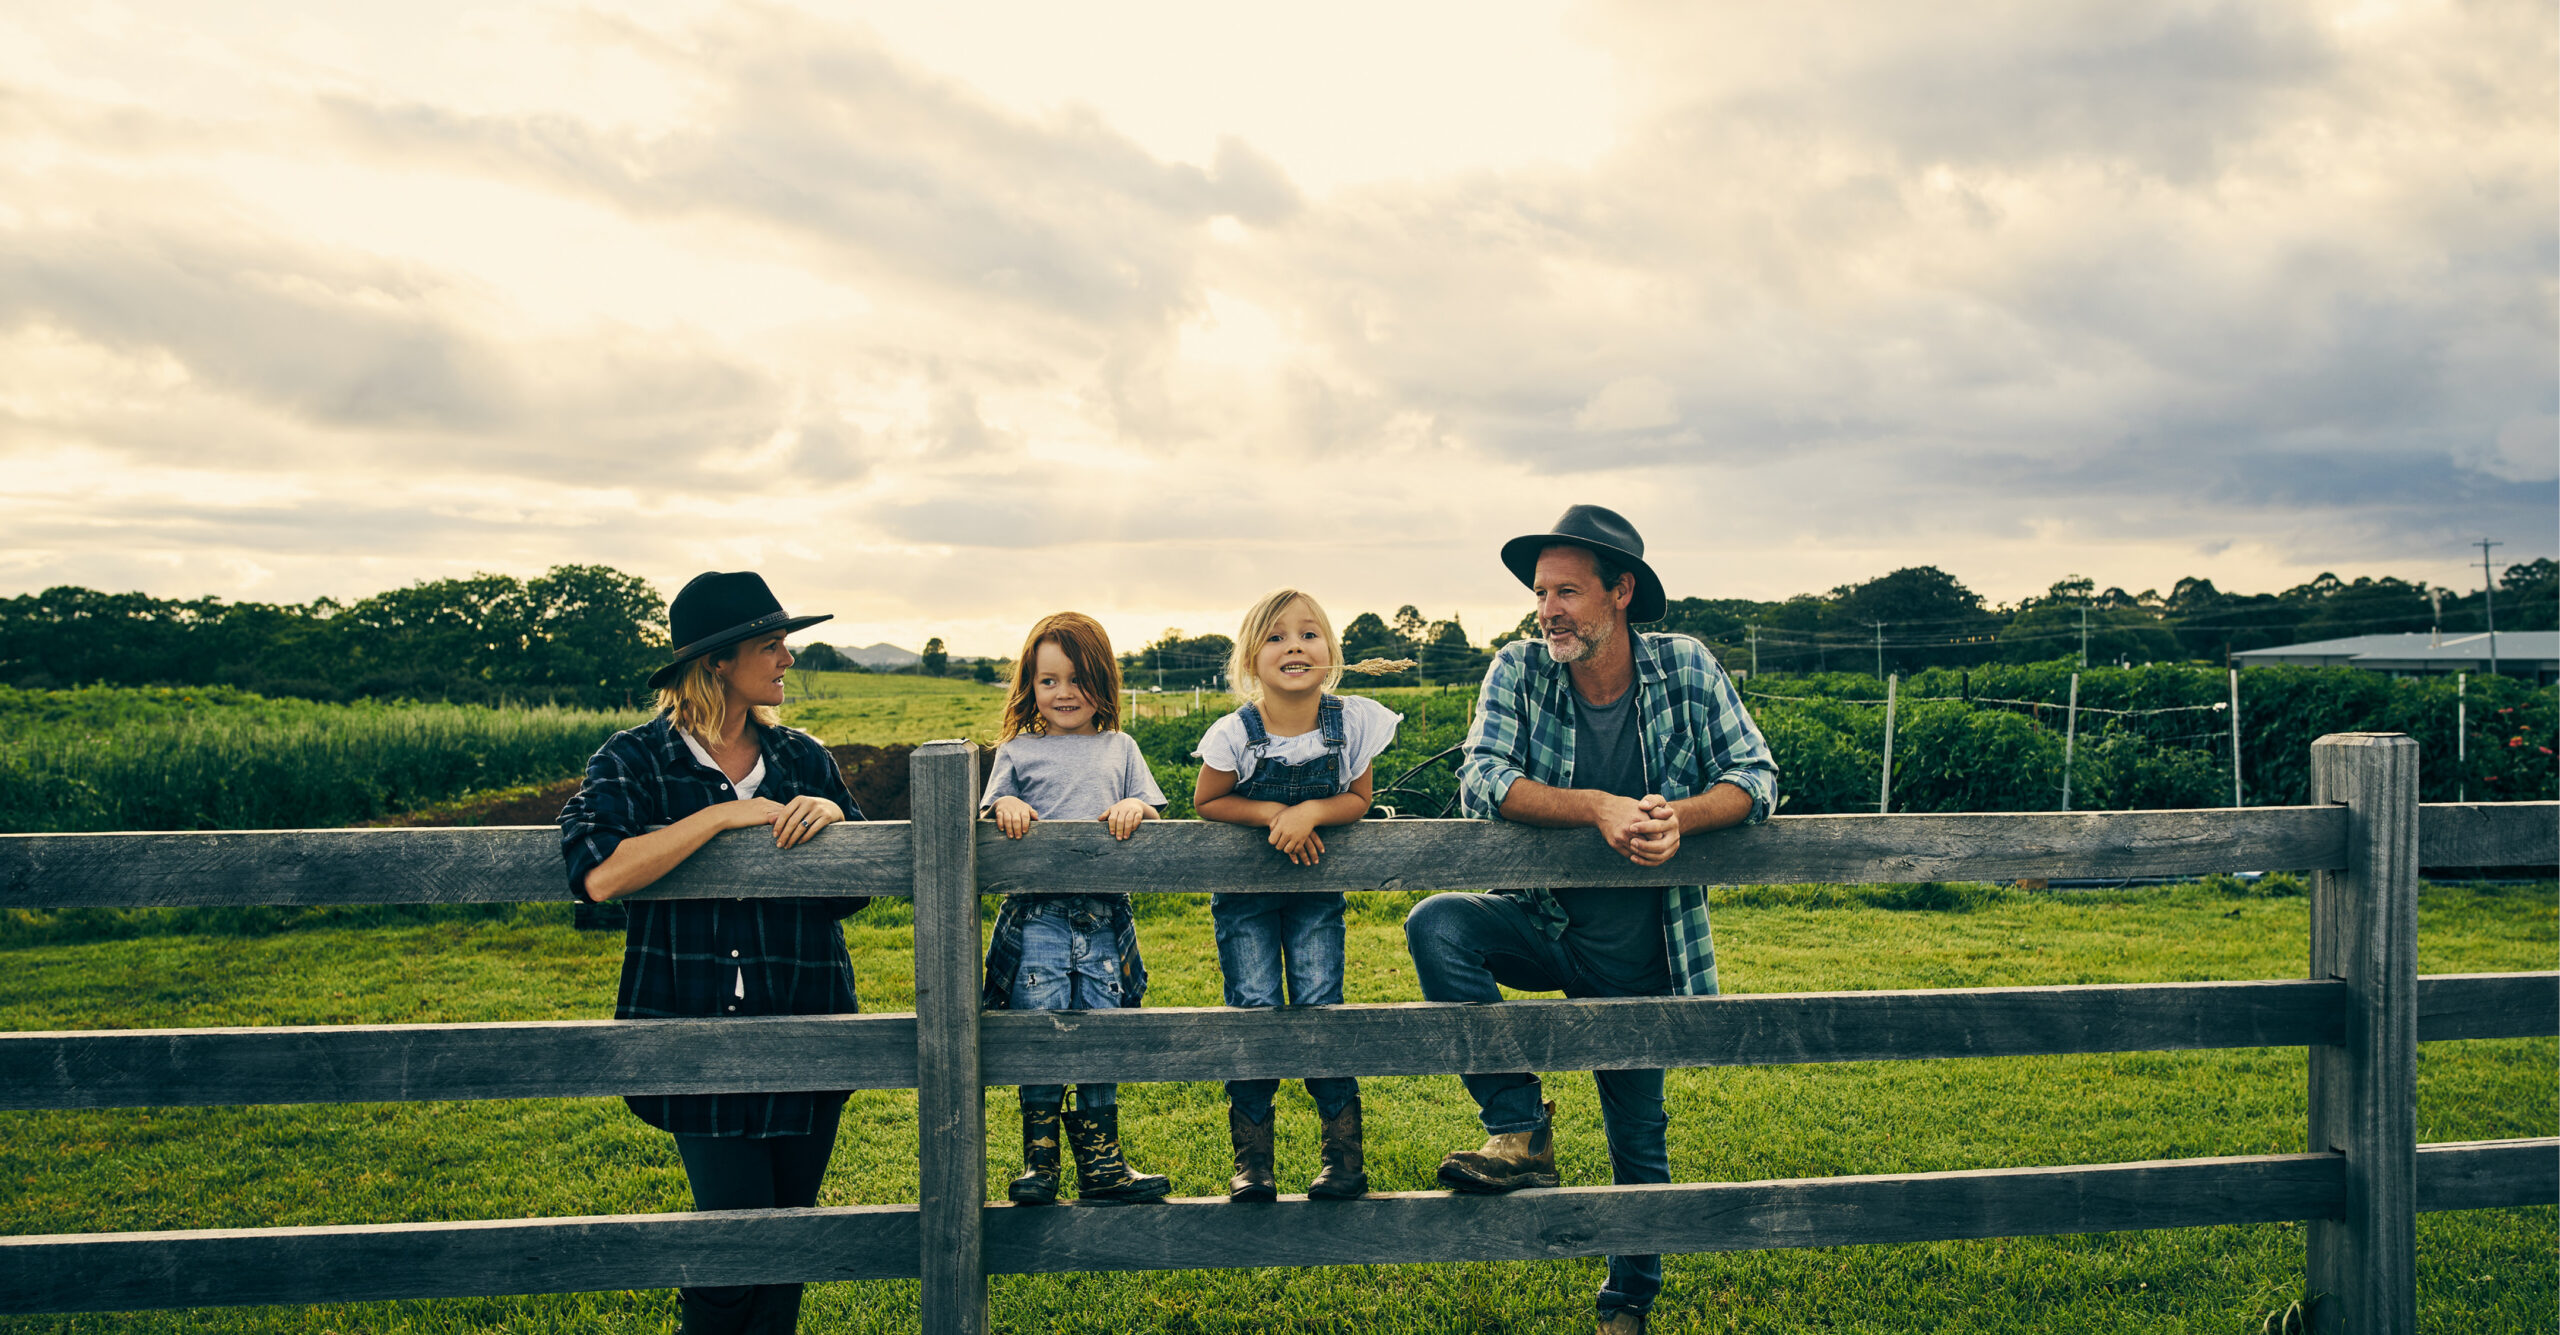 Family on fence post on farm